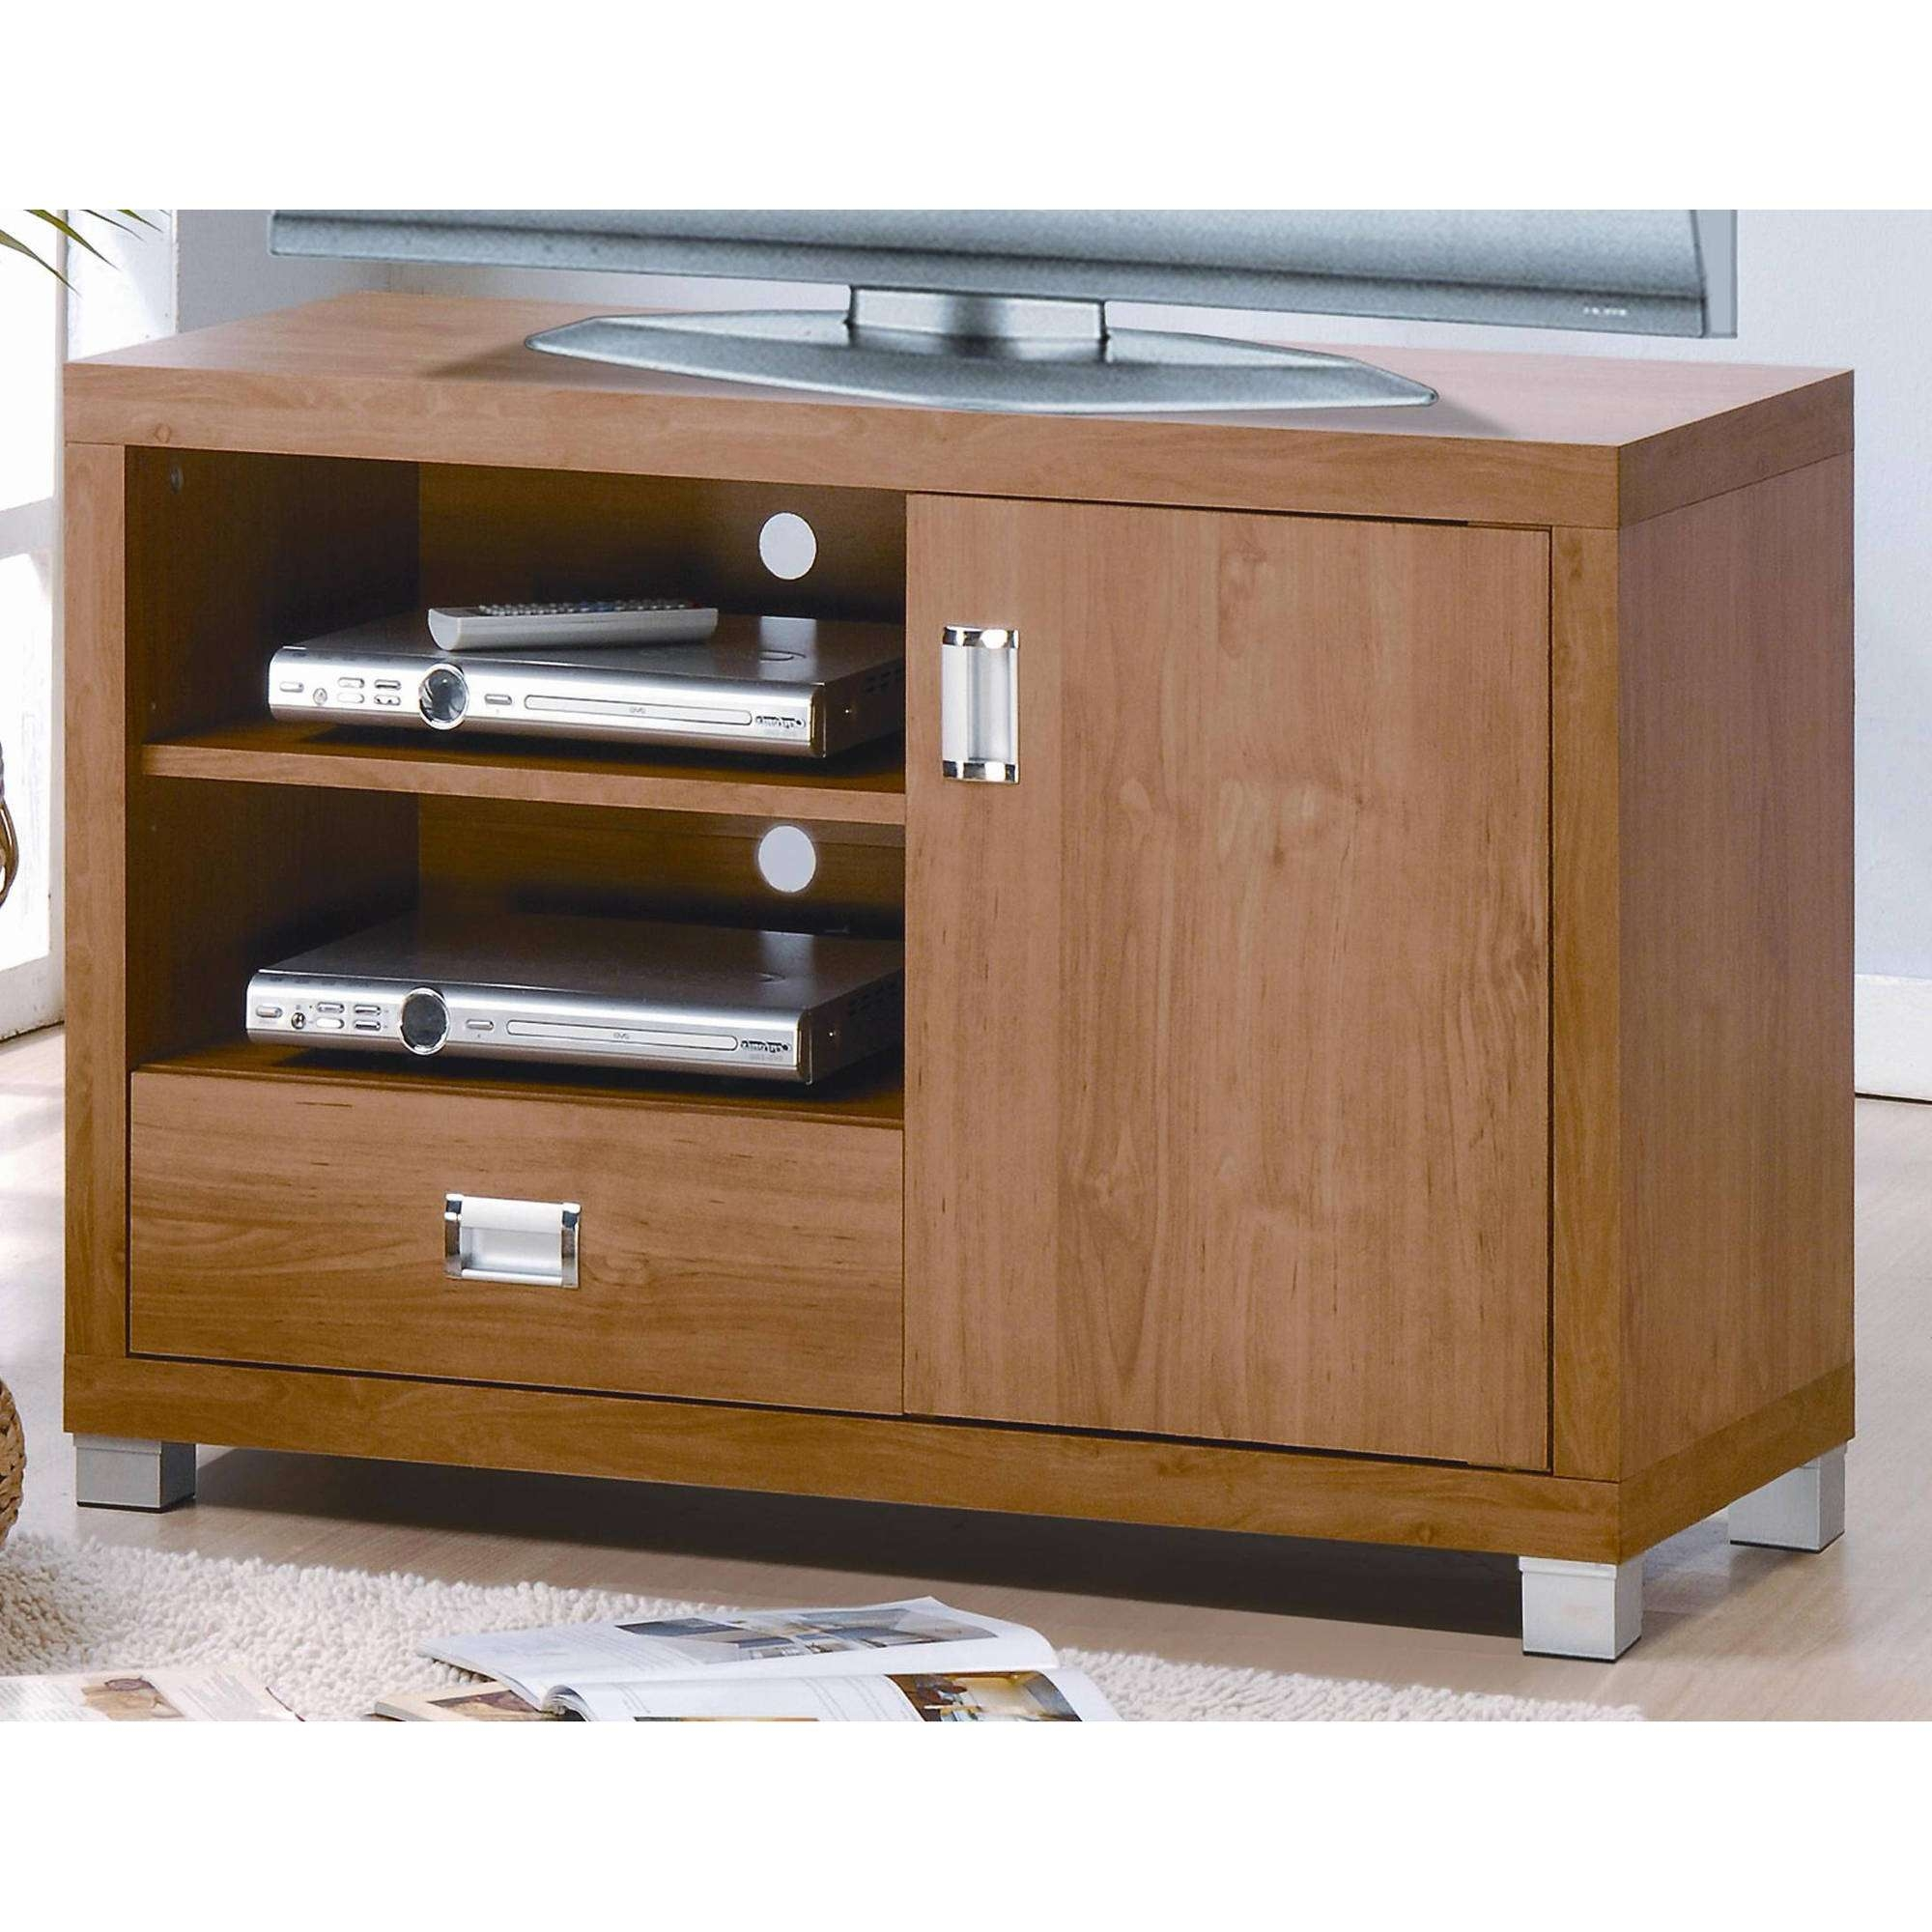 Techni Mobili Tv Cabinet, Maple – Walmart With Regard To Maple Tv Stands (View 7 of 15)